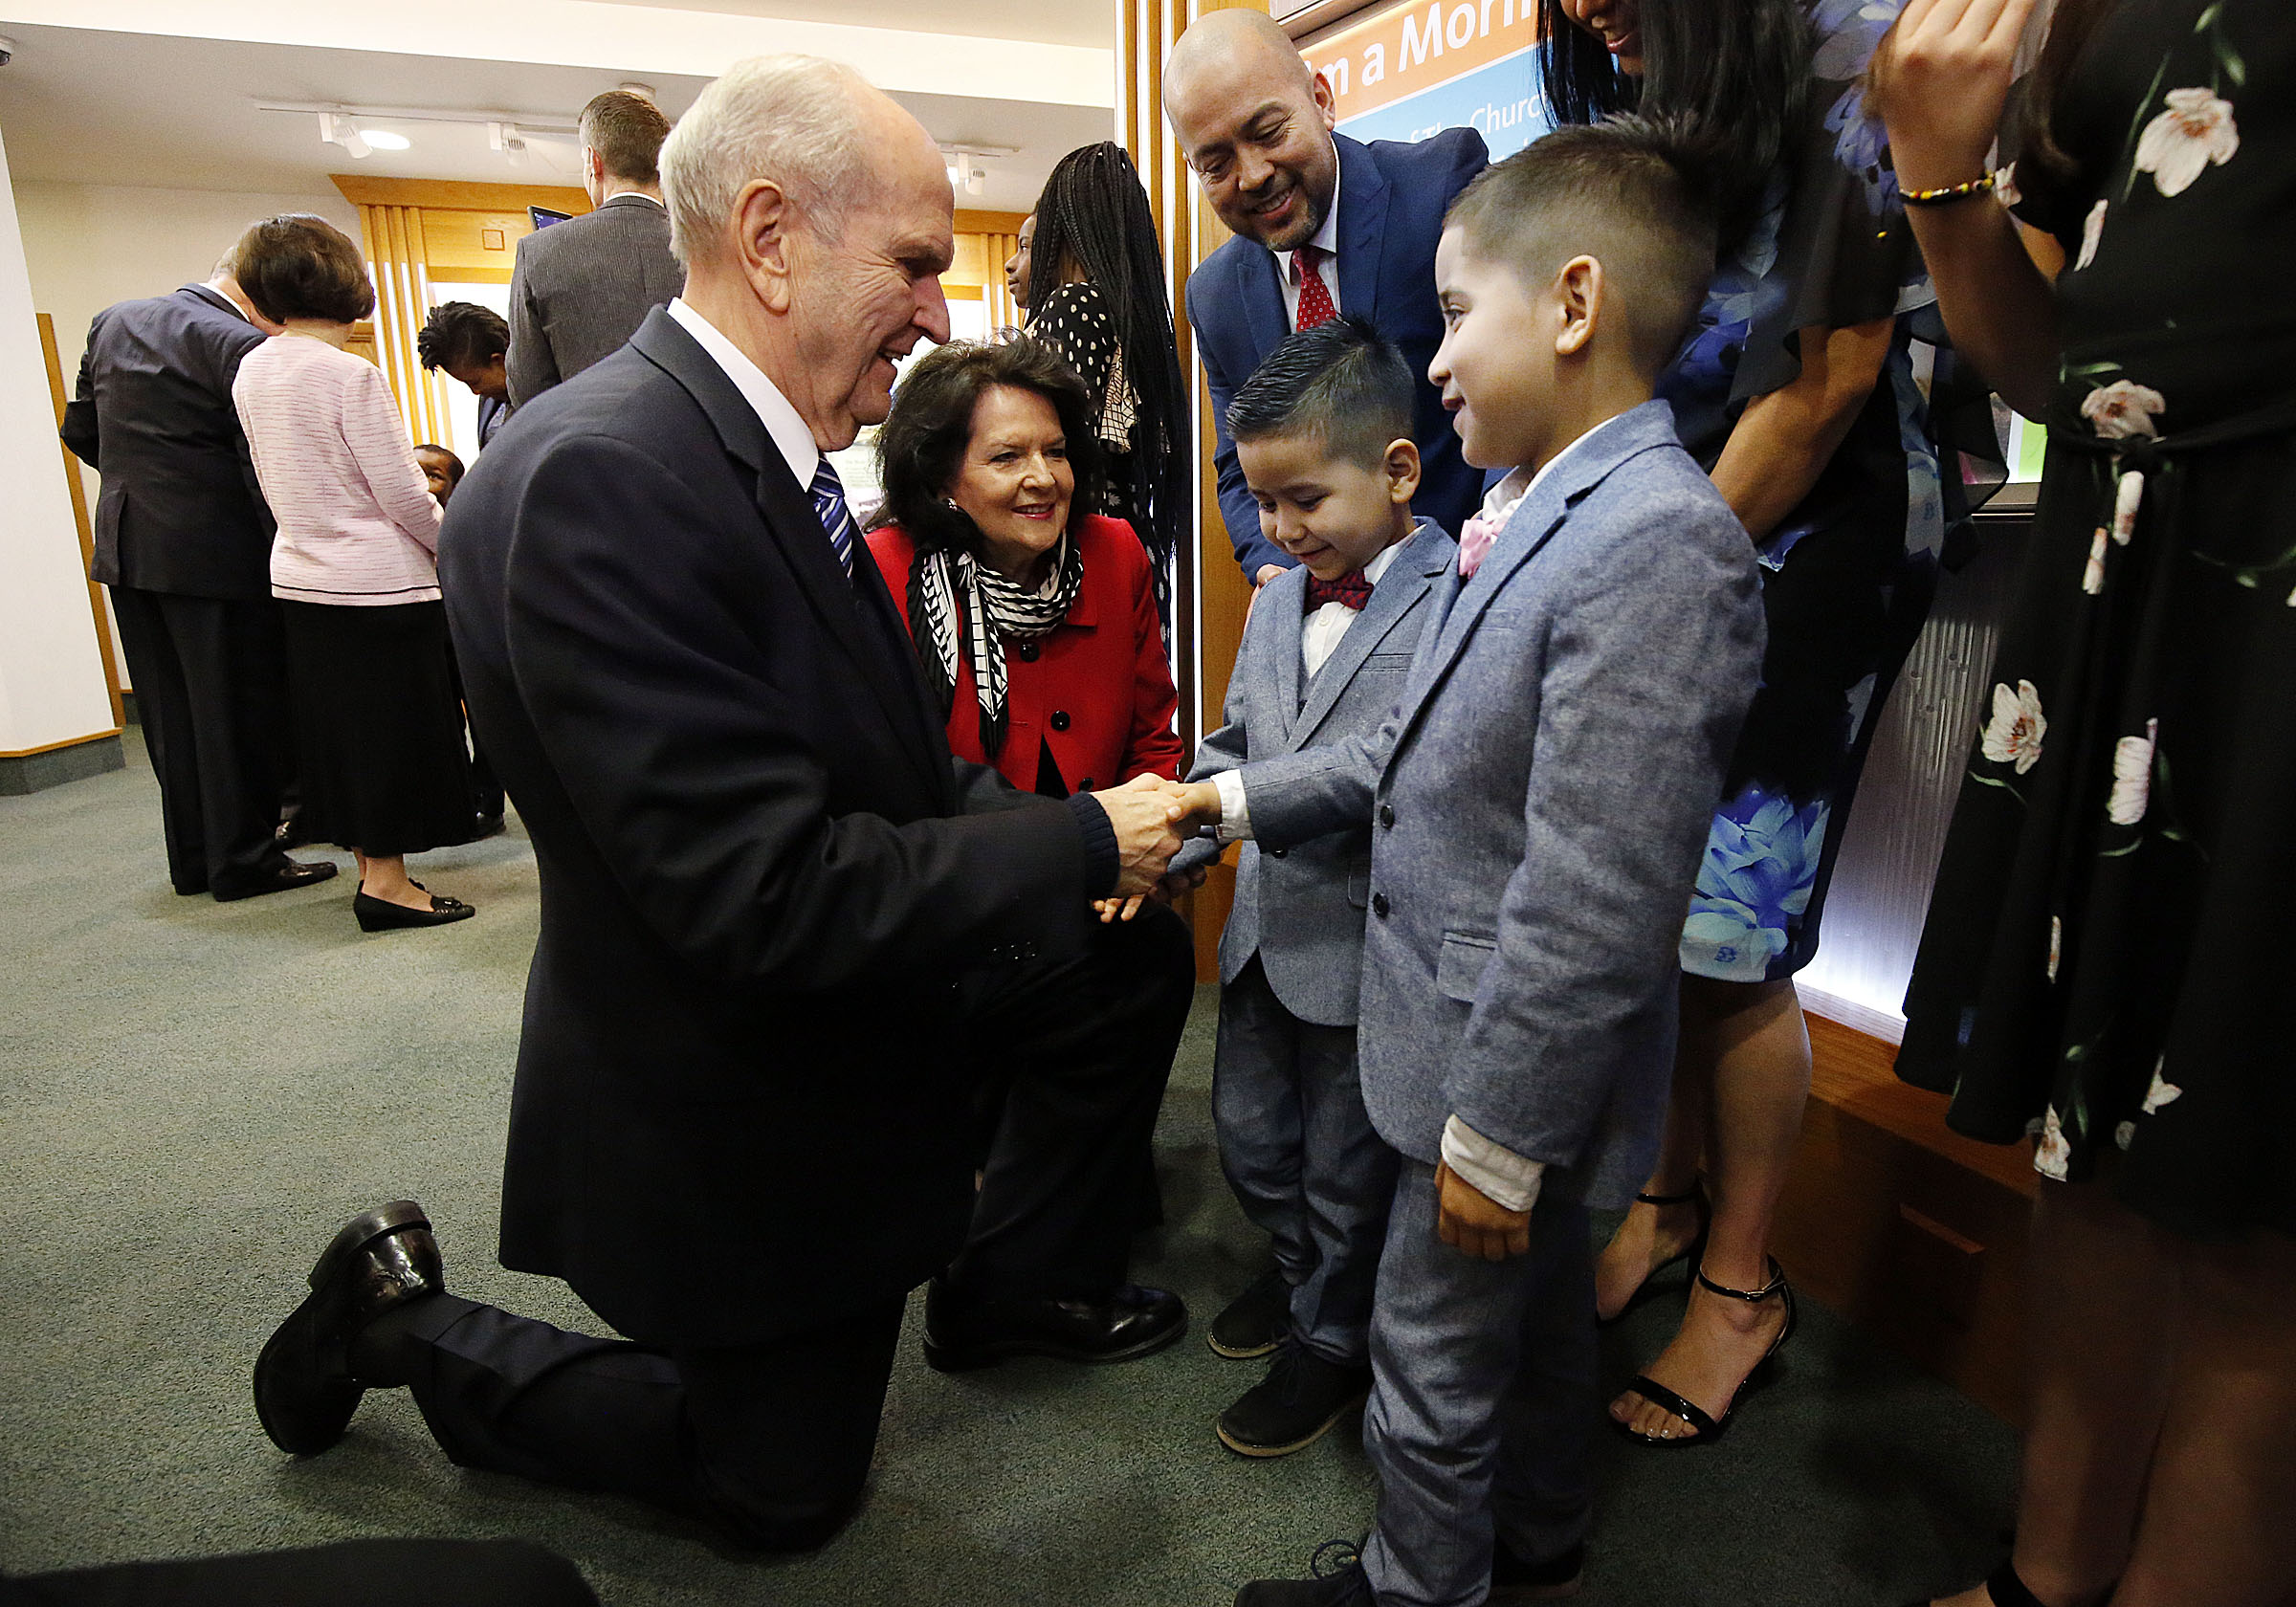 President Russell M. Nelson and Sister Wendy Nelson greet the Vargas family at the Hyde Park Visitors Center in London on Thursday, April 12, 2018. The boys are Juan David Vargas Saavedra, right, and Joseph Daniel Vargas Saavedra.